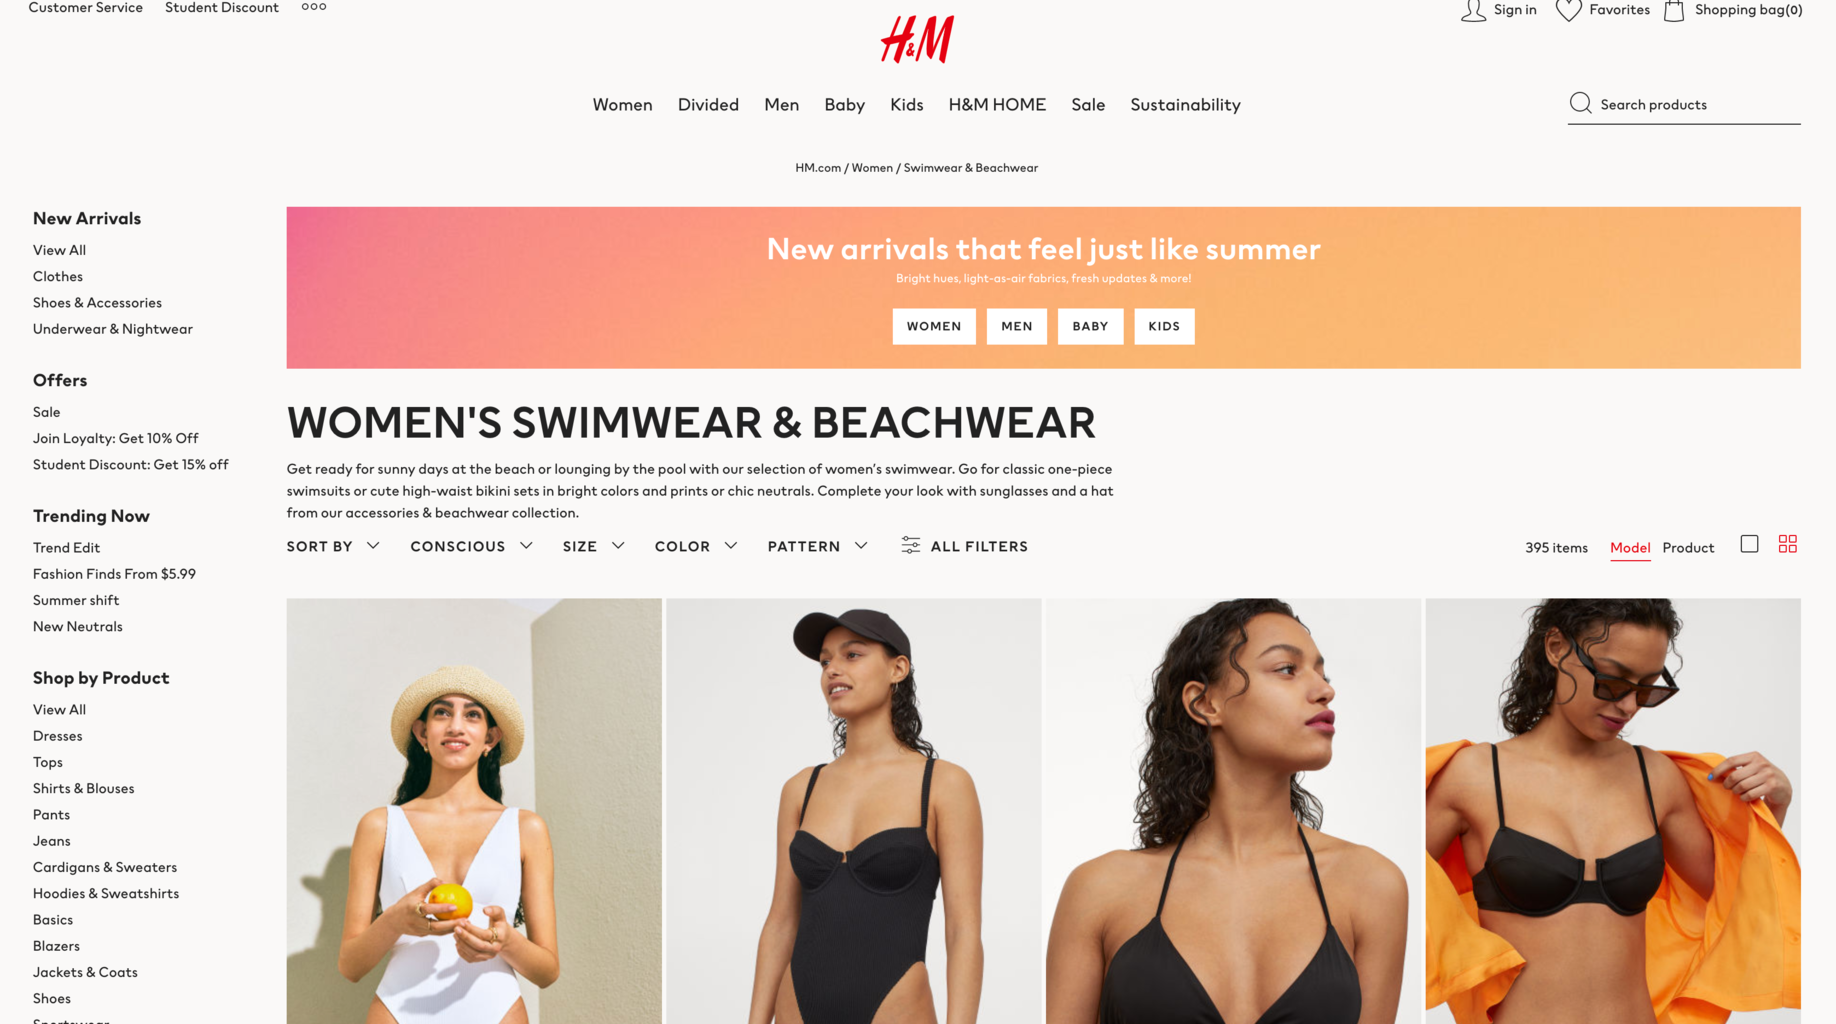 Photo from H&M